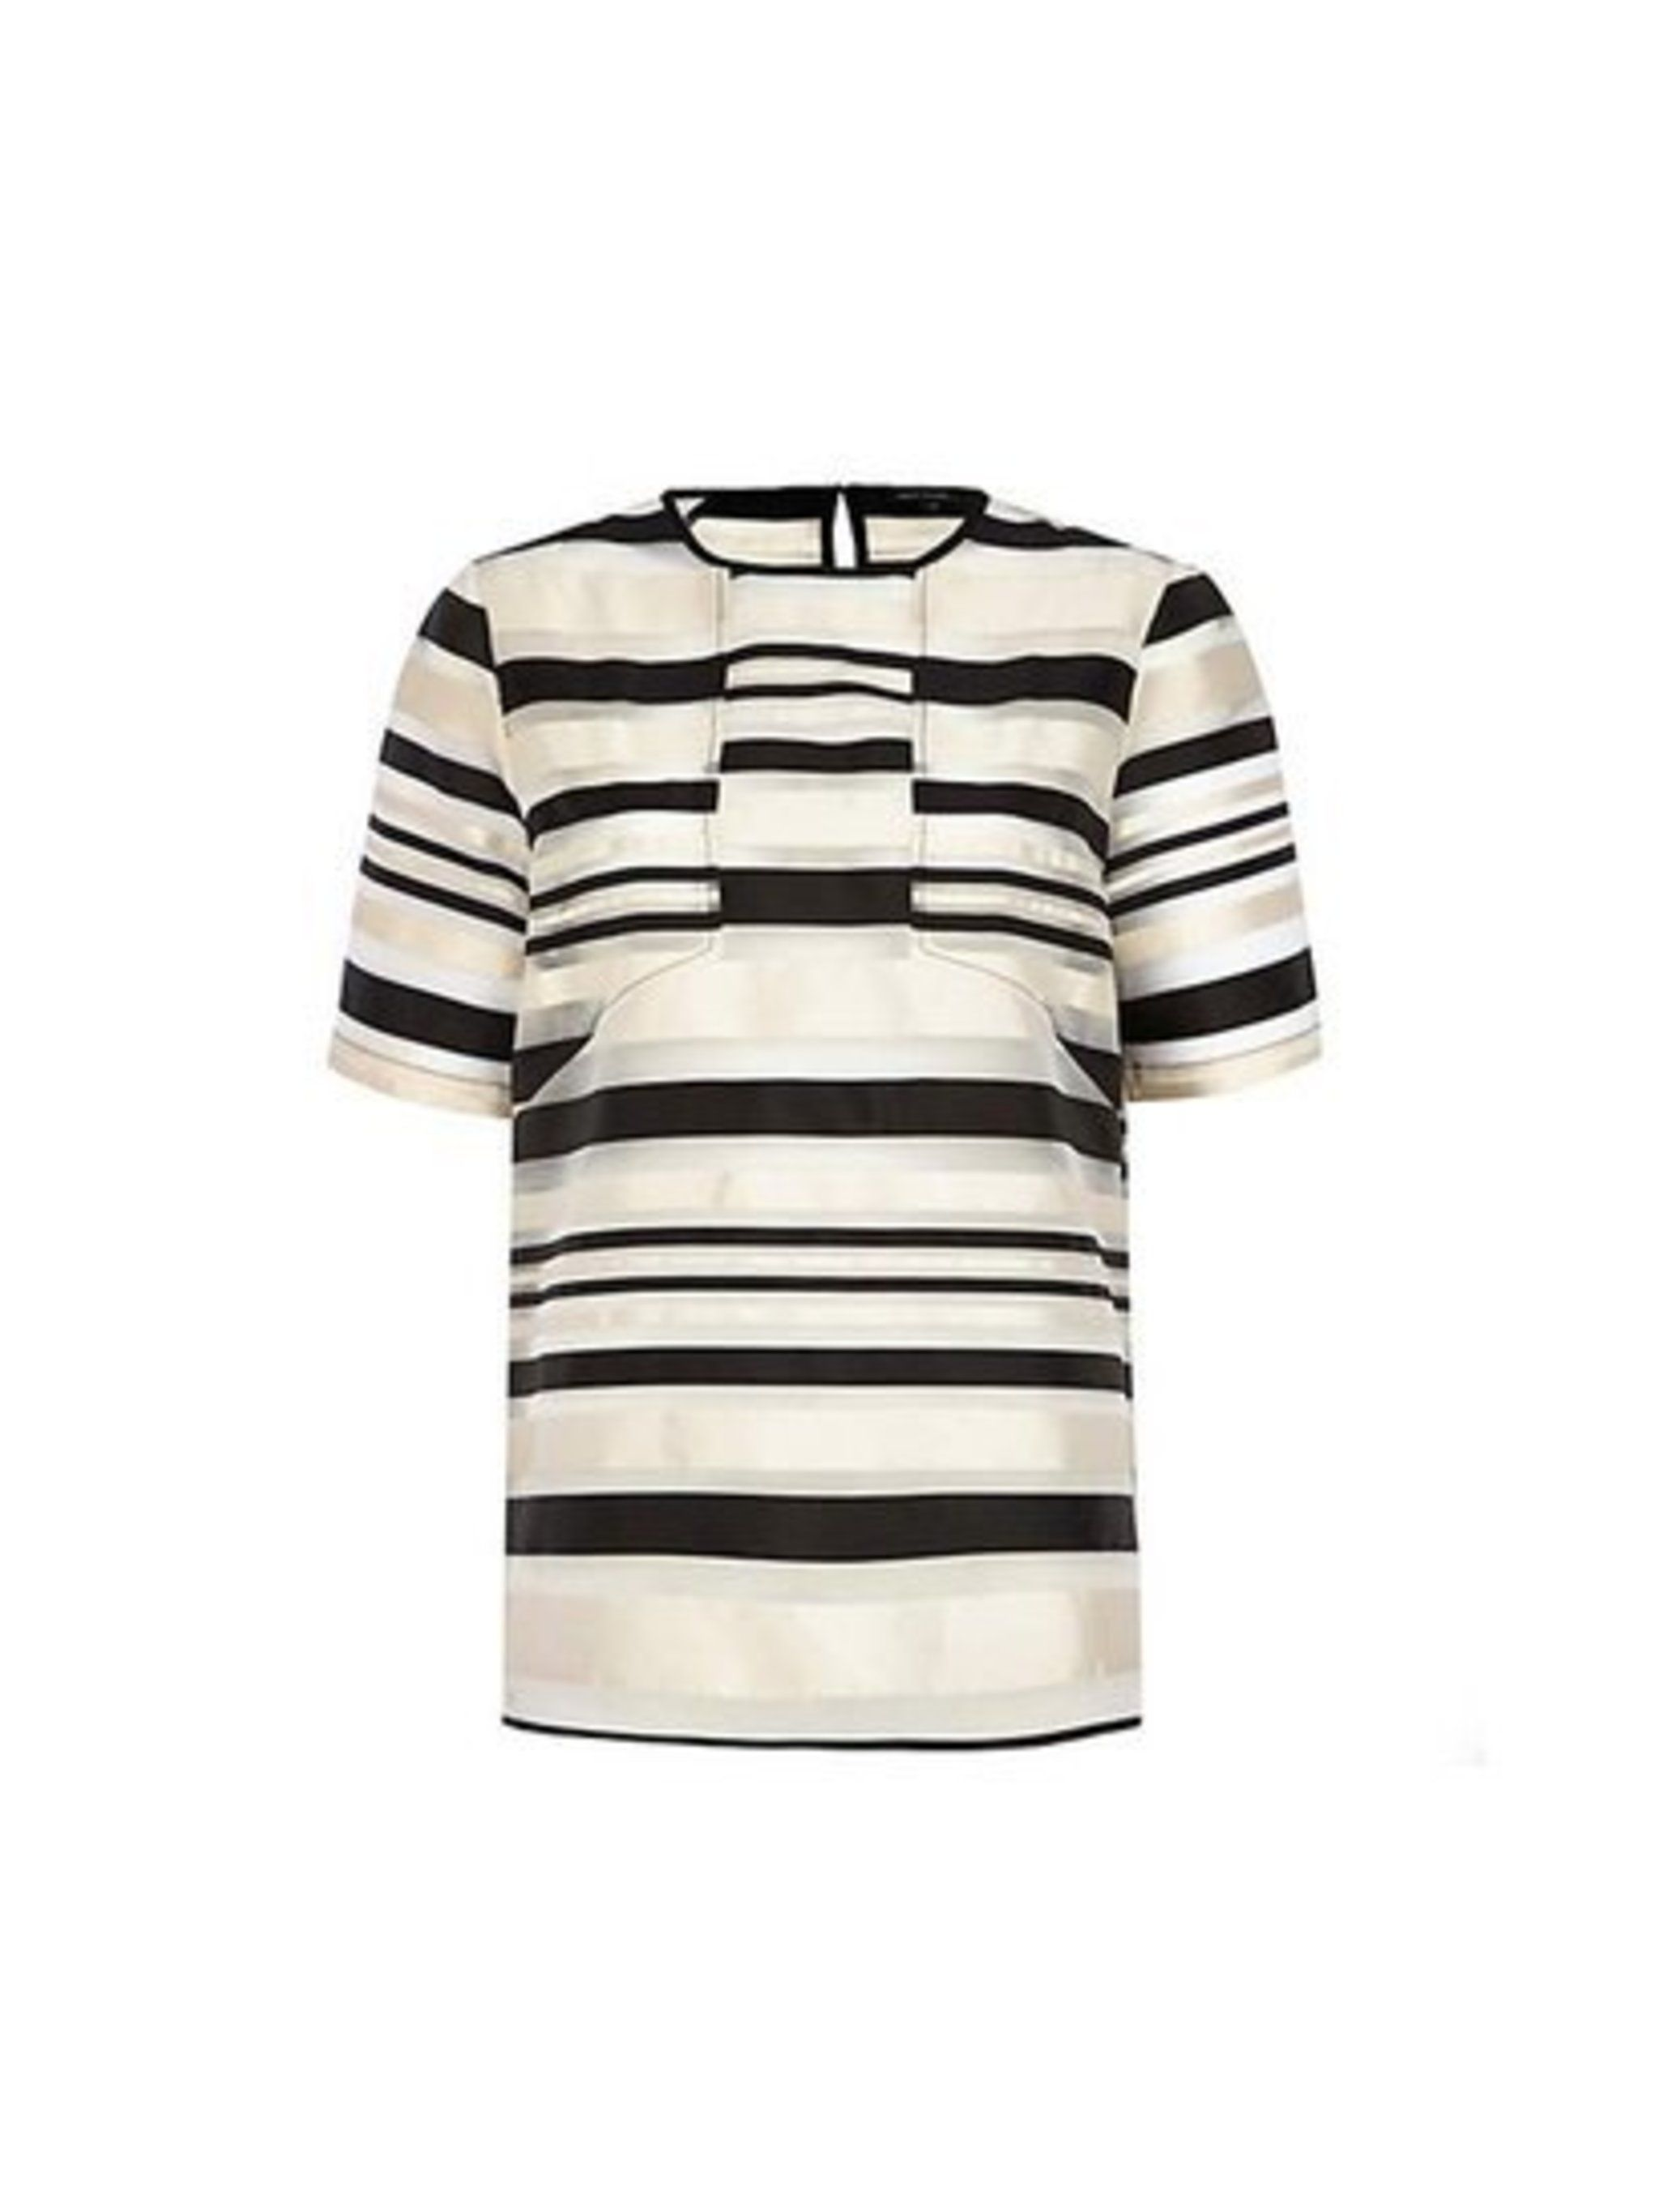 Pair with cigarette pants, like Executive Fashion Director Kirsty Dale.  River Island top, £35